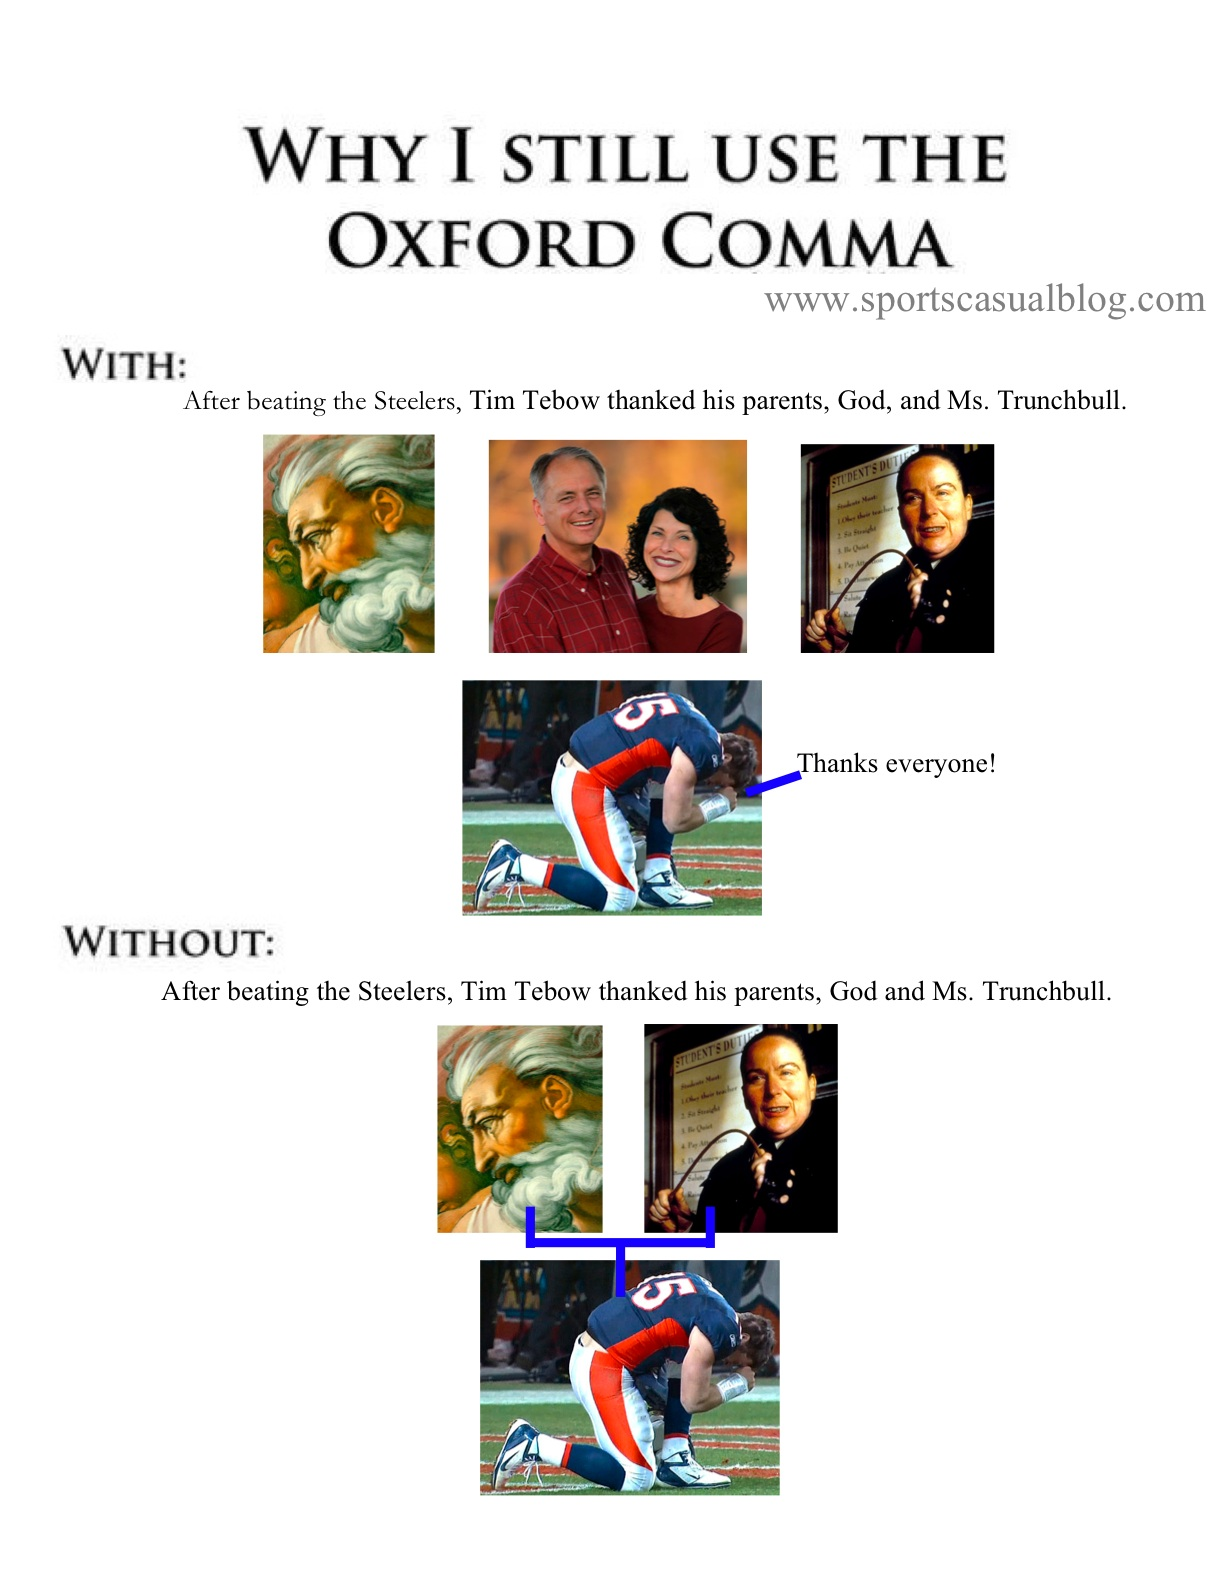 tim tebow and the oxford comma